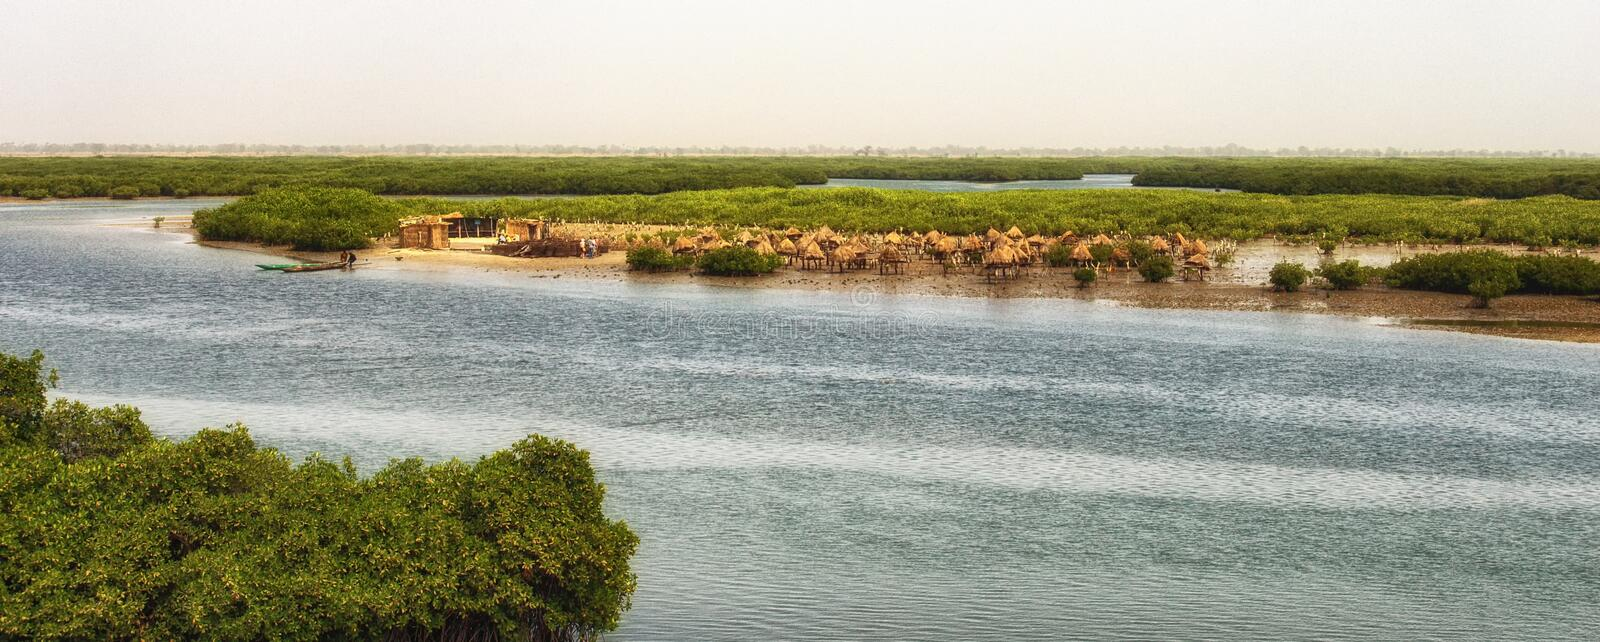 Island composed of shells with granaries on stilts out in the sea to protect from fire, Joal Fadiouth, Senegal stock image